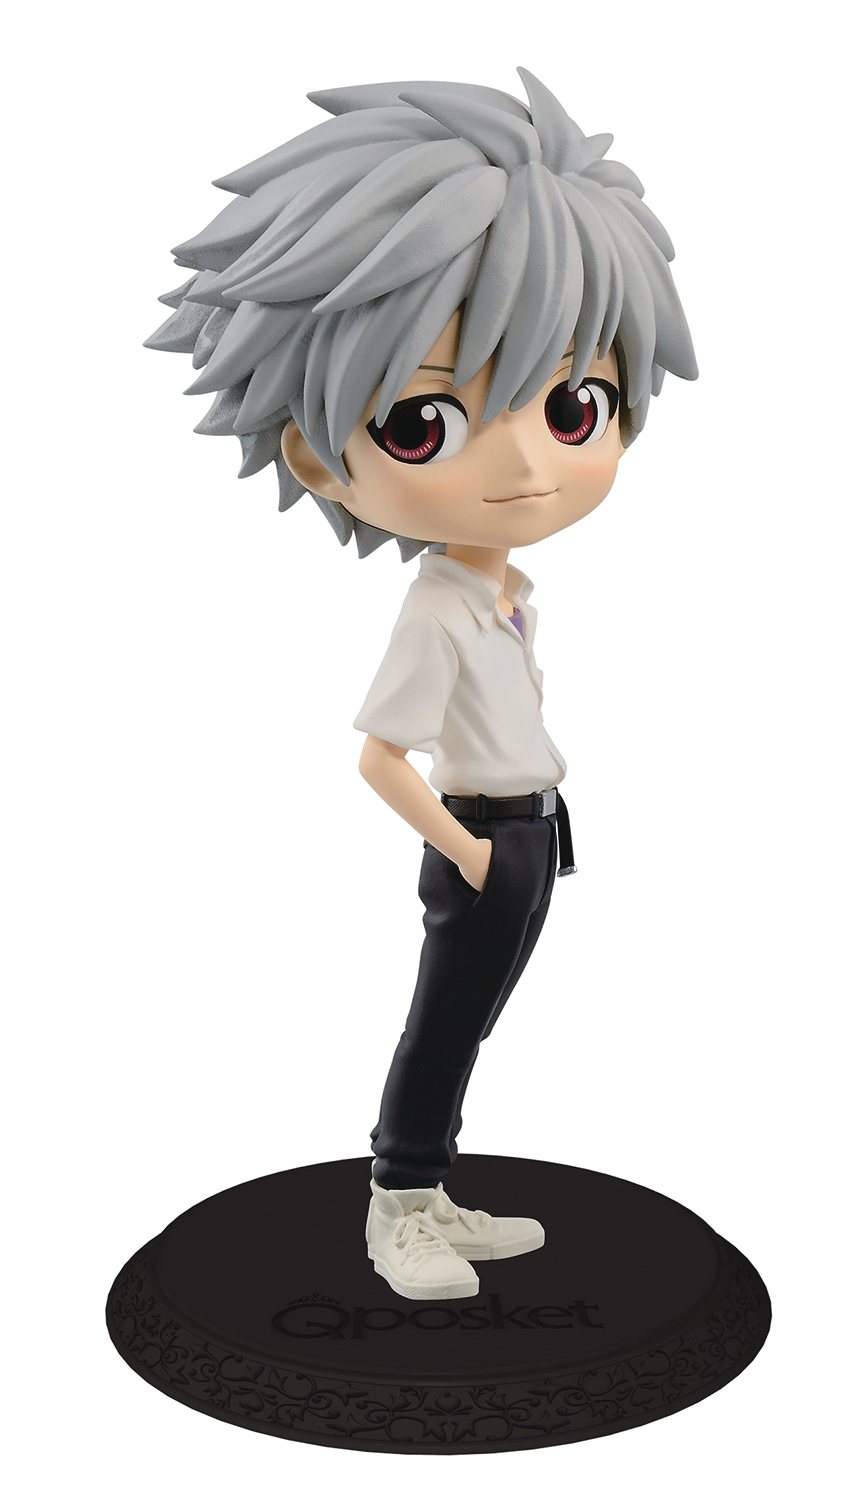 EVANGELION MOVIE Q-POSKET KAWORU NAGISA V1 FIG